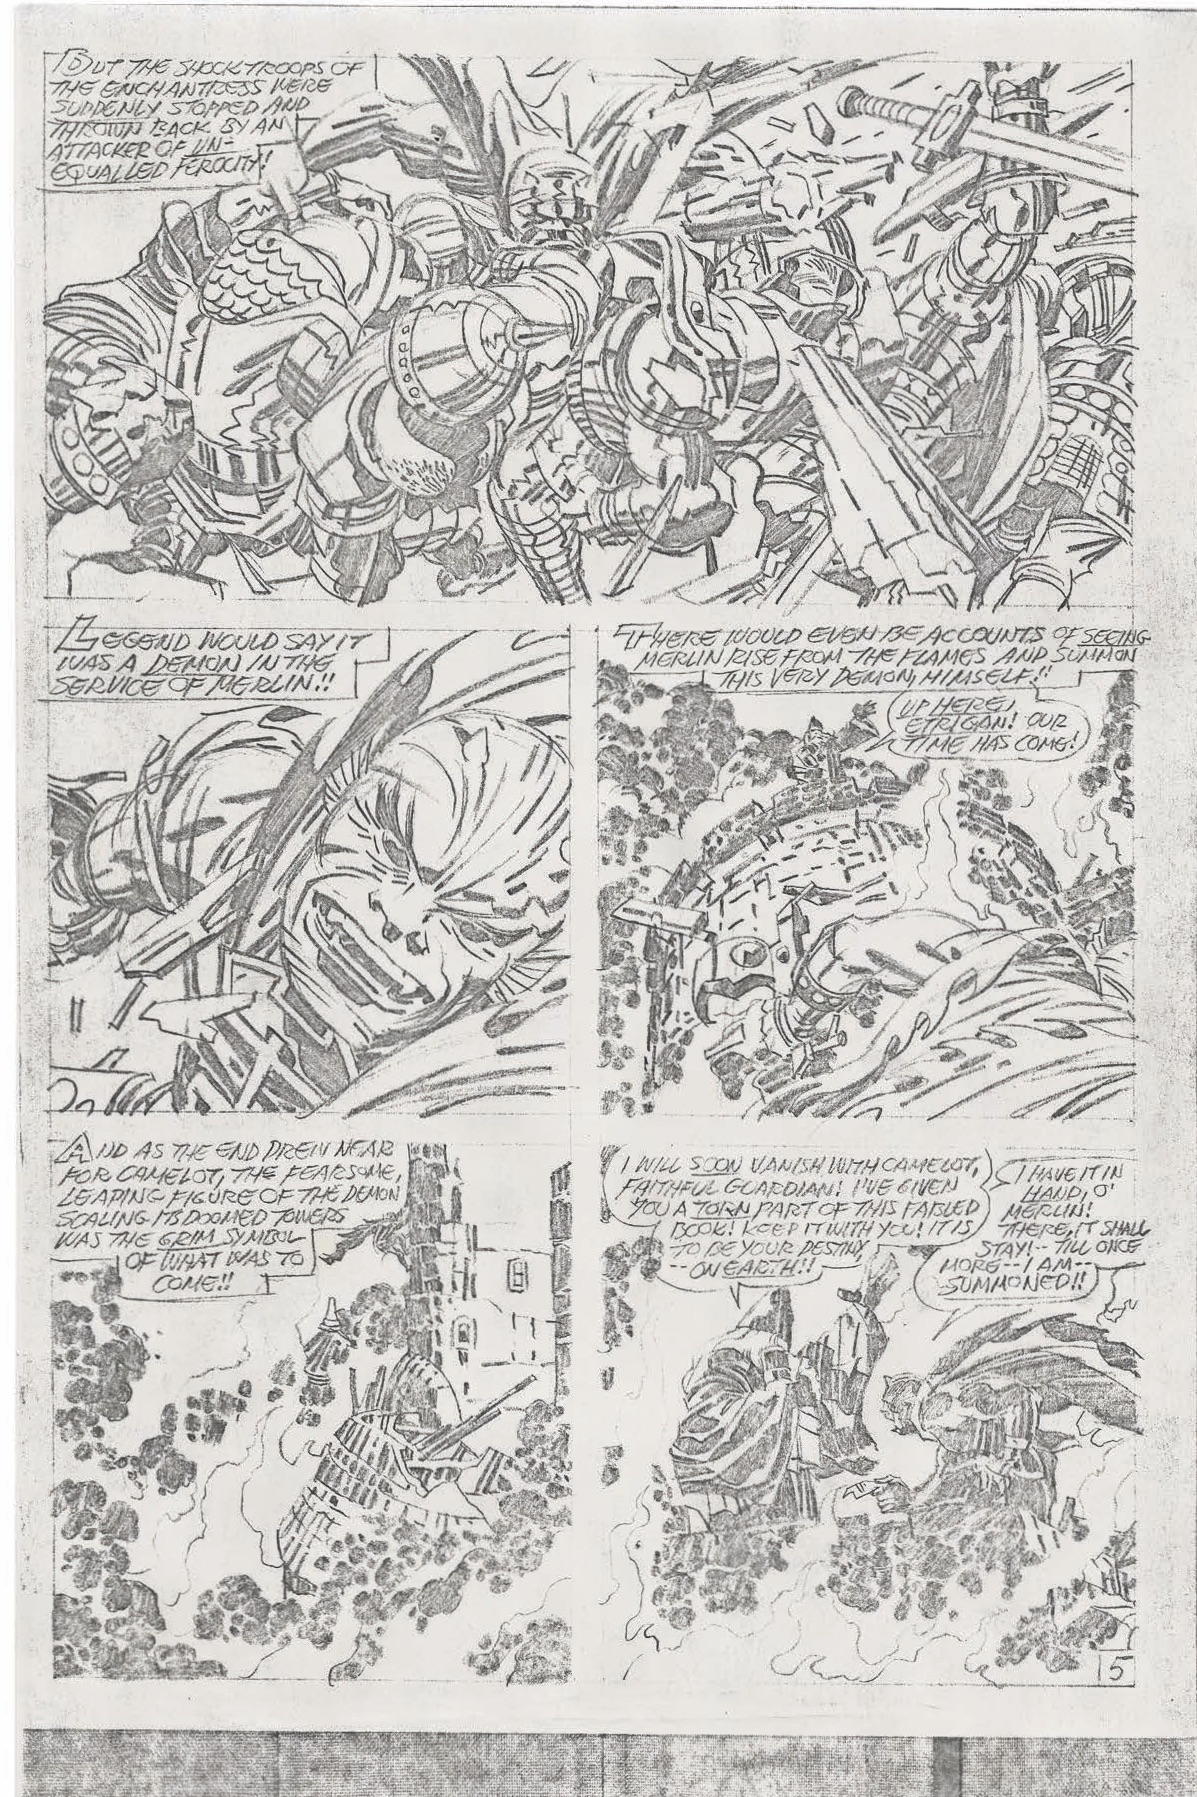 jackkirby_pencils_inks-lodemon2